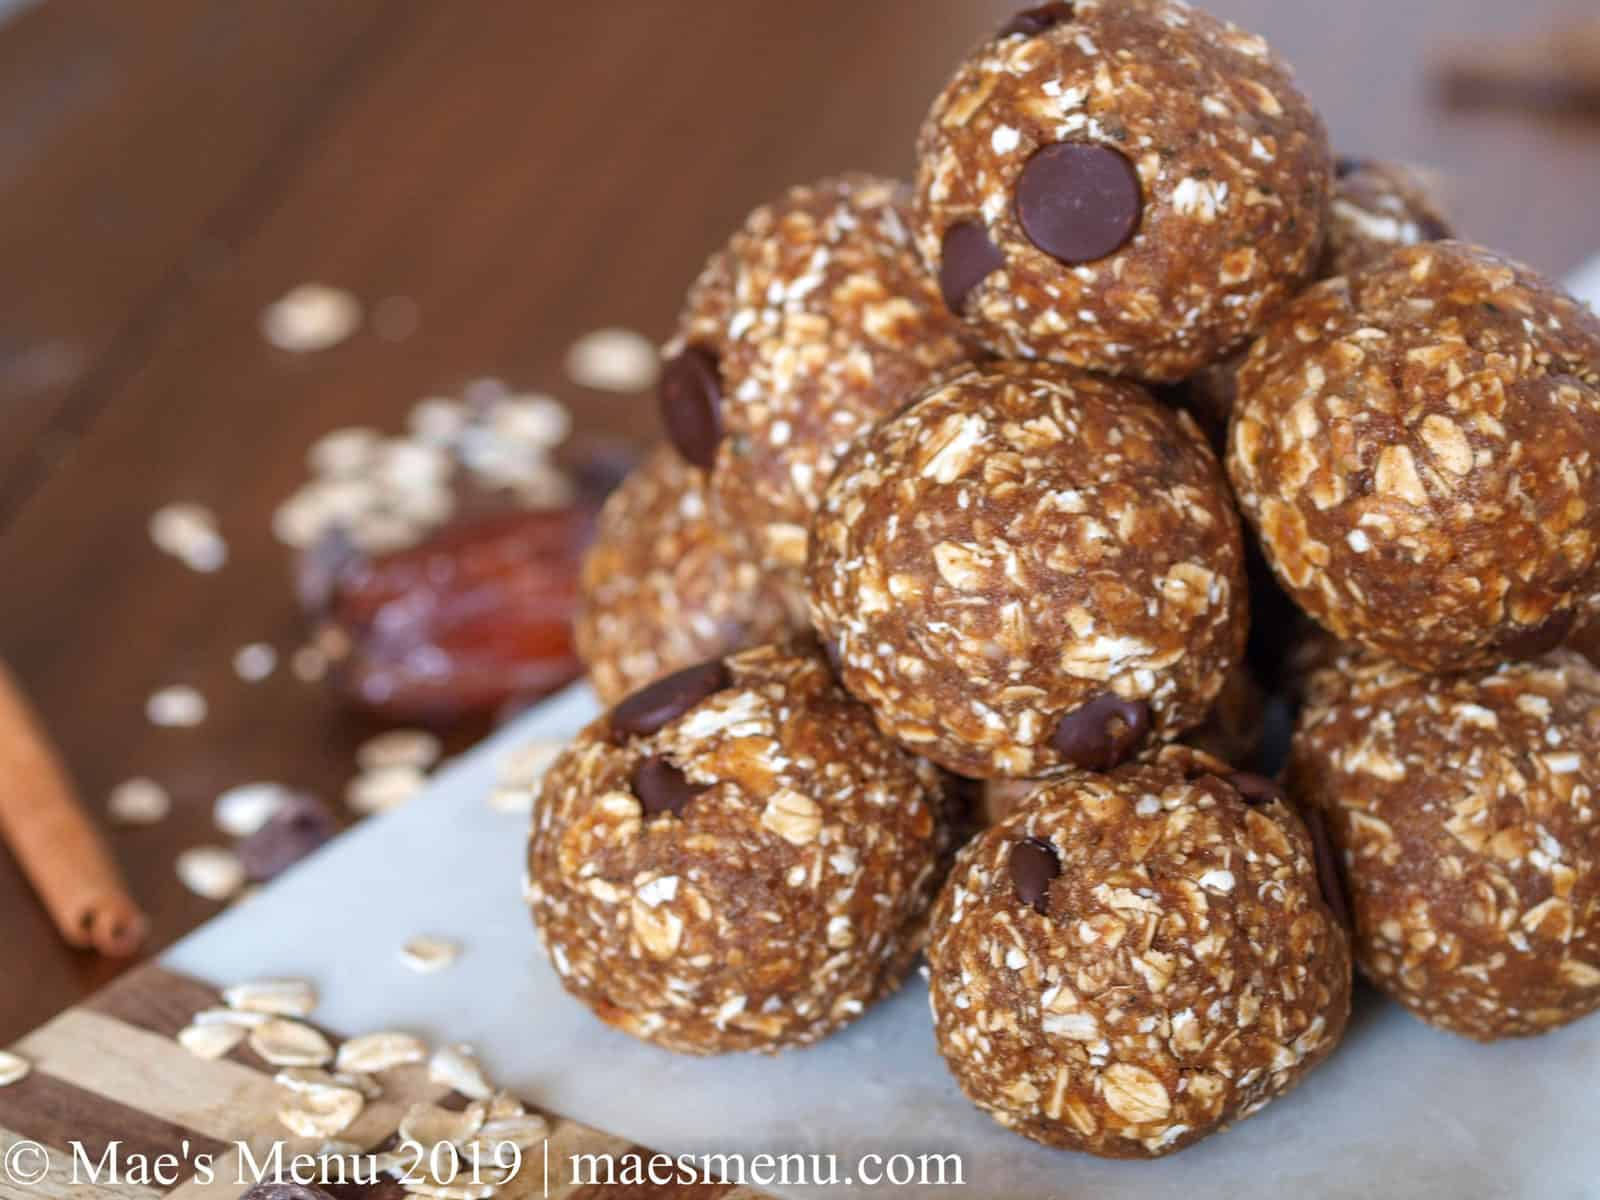 A pyramid of date energy balls on a small serving board.